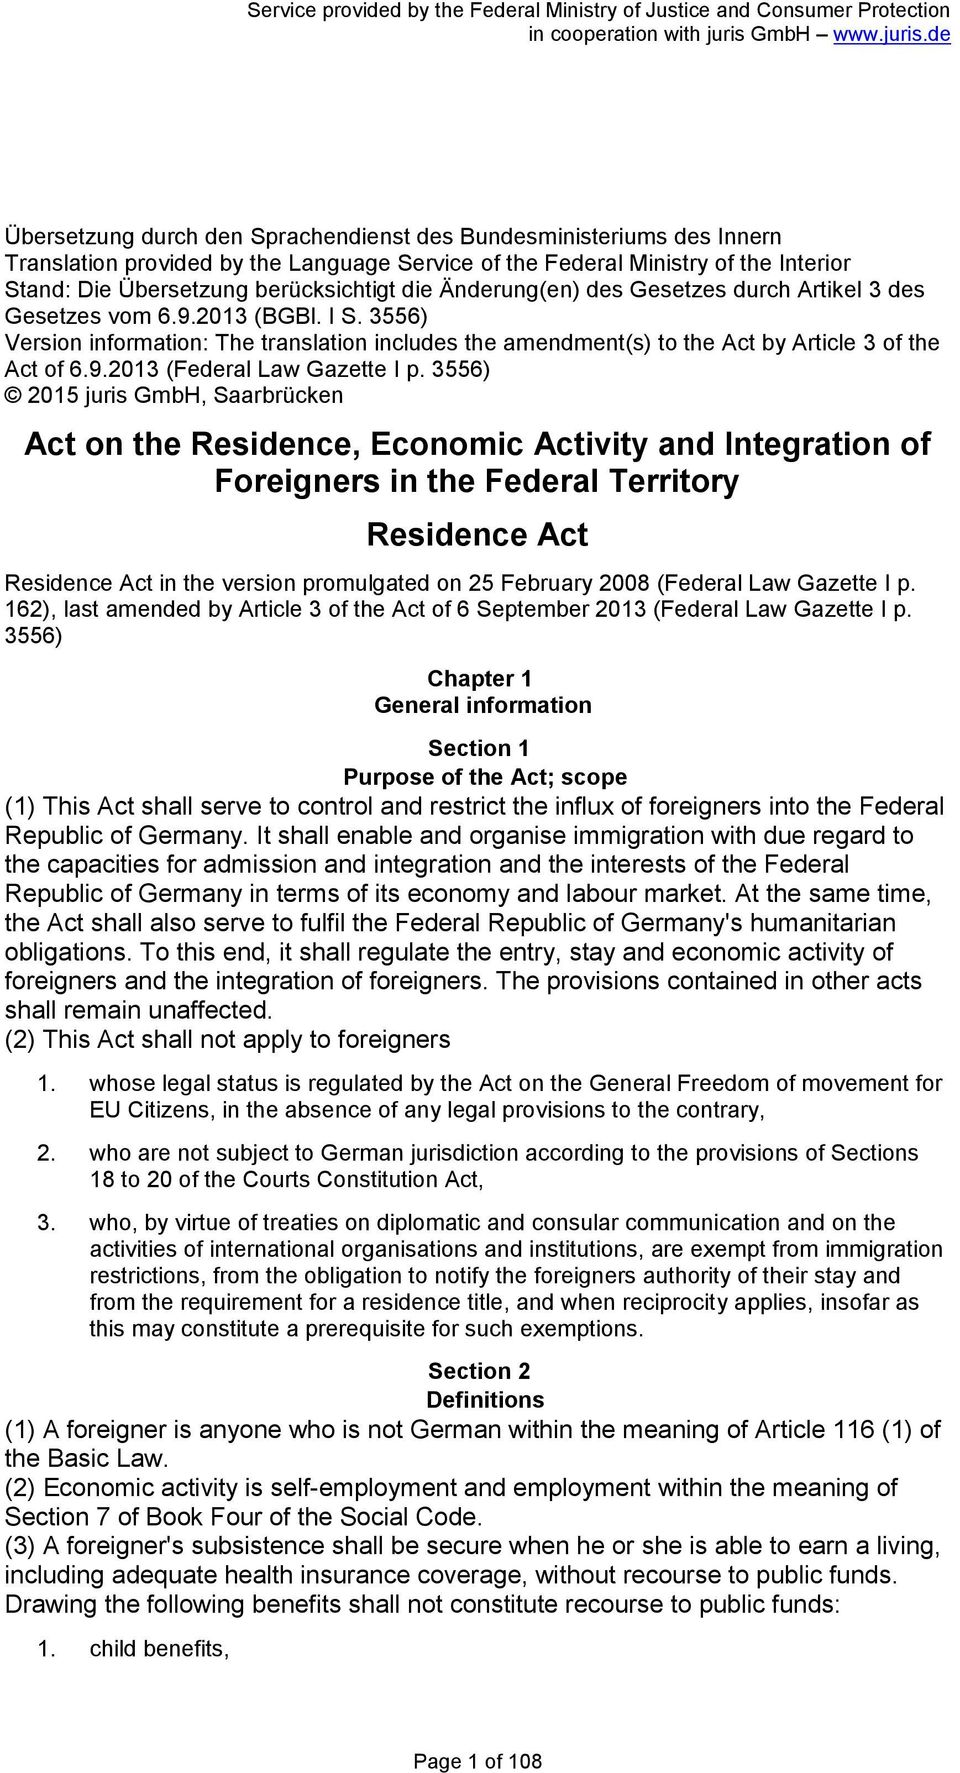 3556) 2015 juris GmbH, Saarbrücken Act on the Residence, Economic Activity and Integration of Foreigners in the Federal Territory Residence Act Residence Act in the version promulgated on 25 February